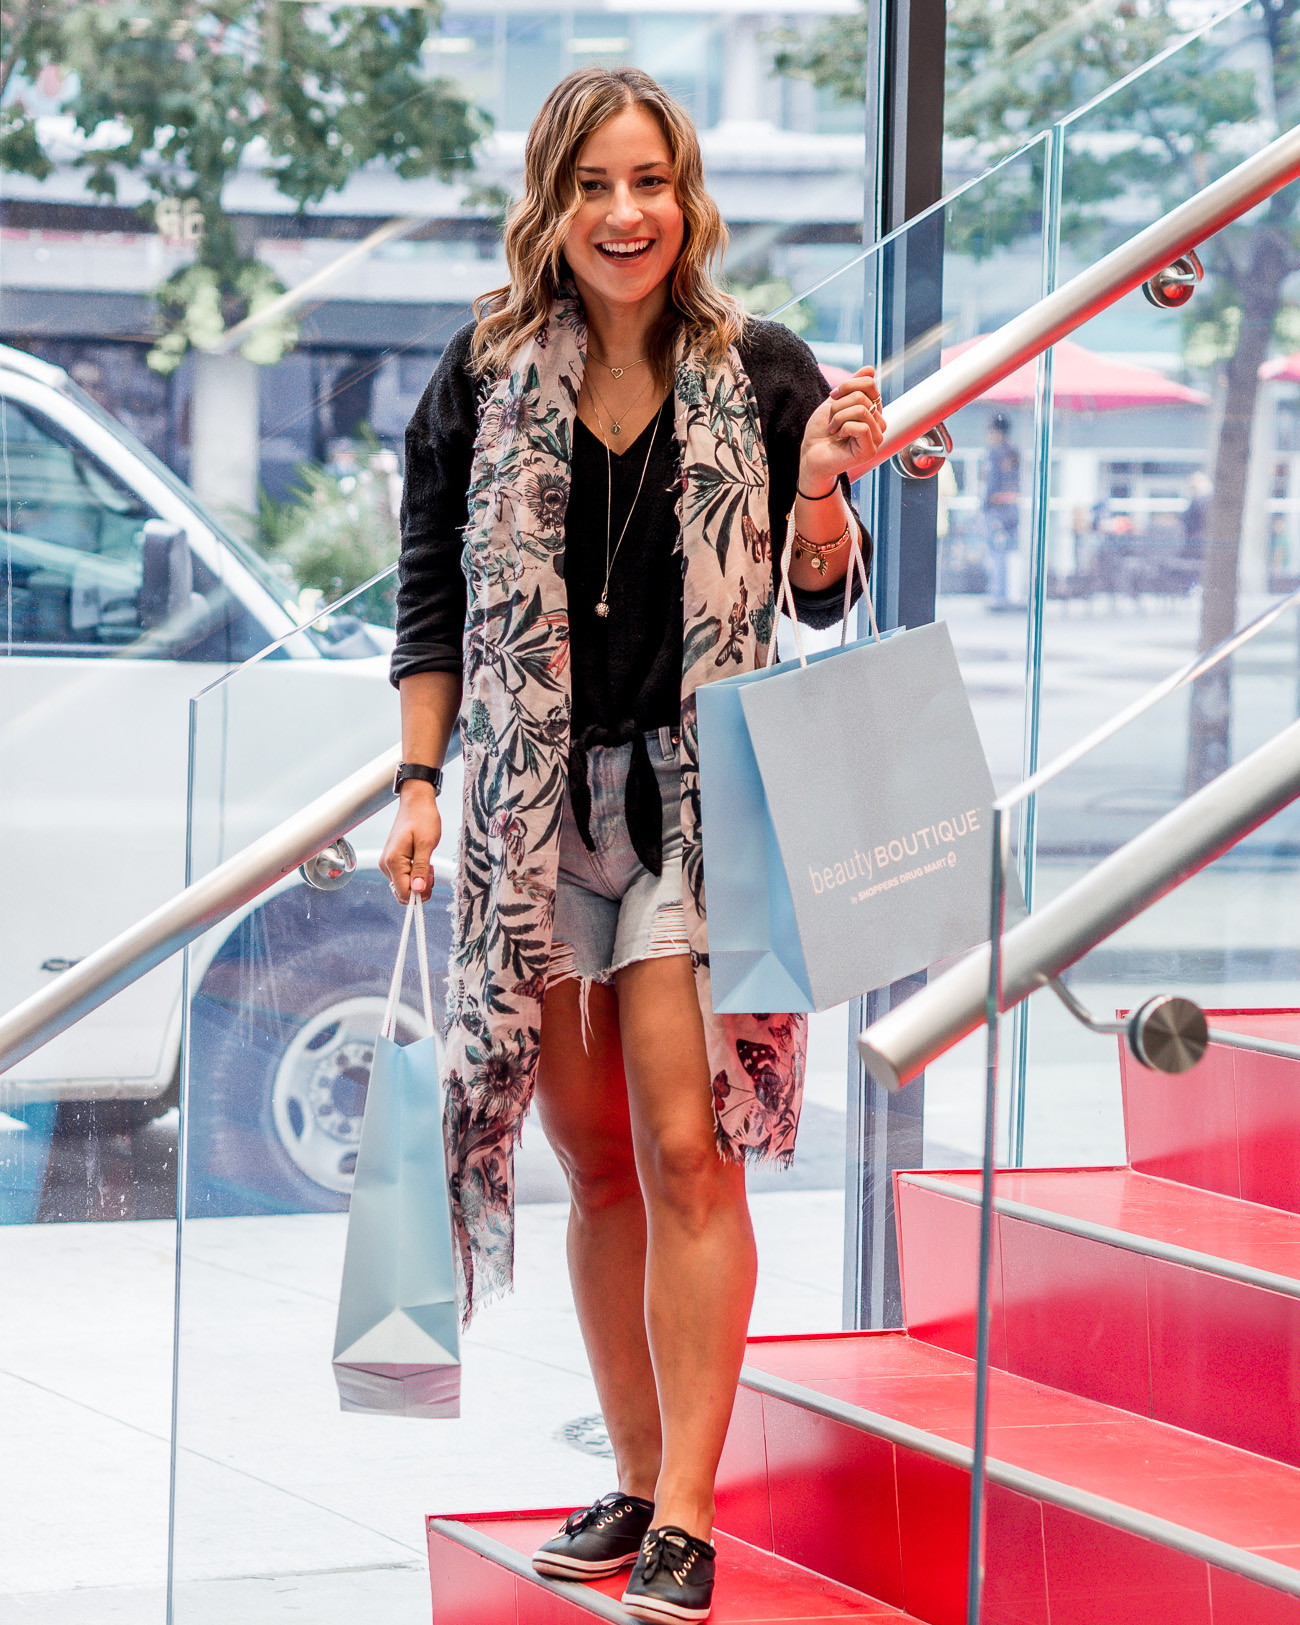 Jackie Goldhar, lifestyle and fashion blogger from Toronto checked out the new Shoppers Drug Mart at Yonge Dundas Square and shares her experience